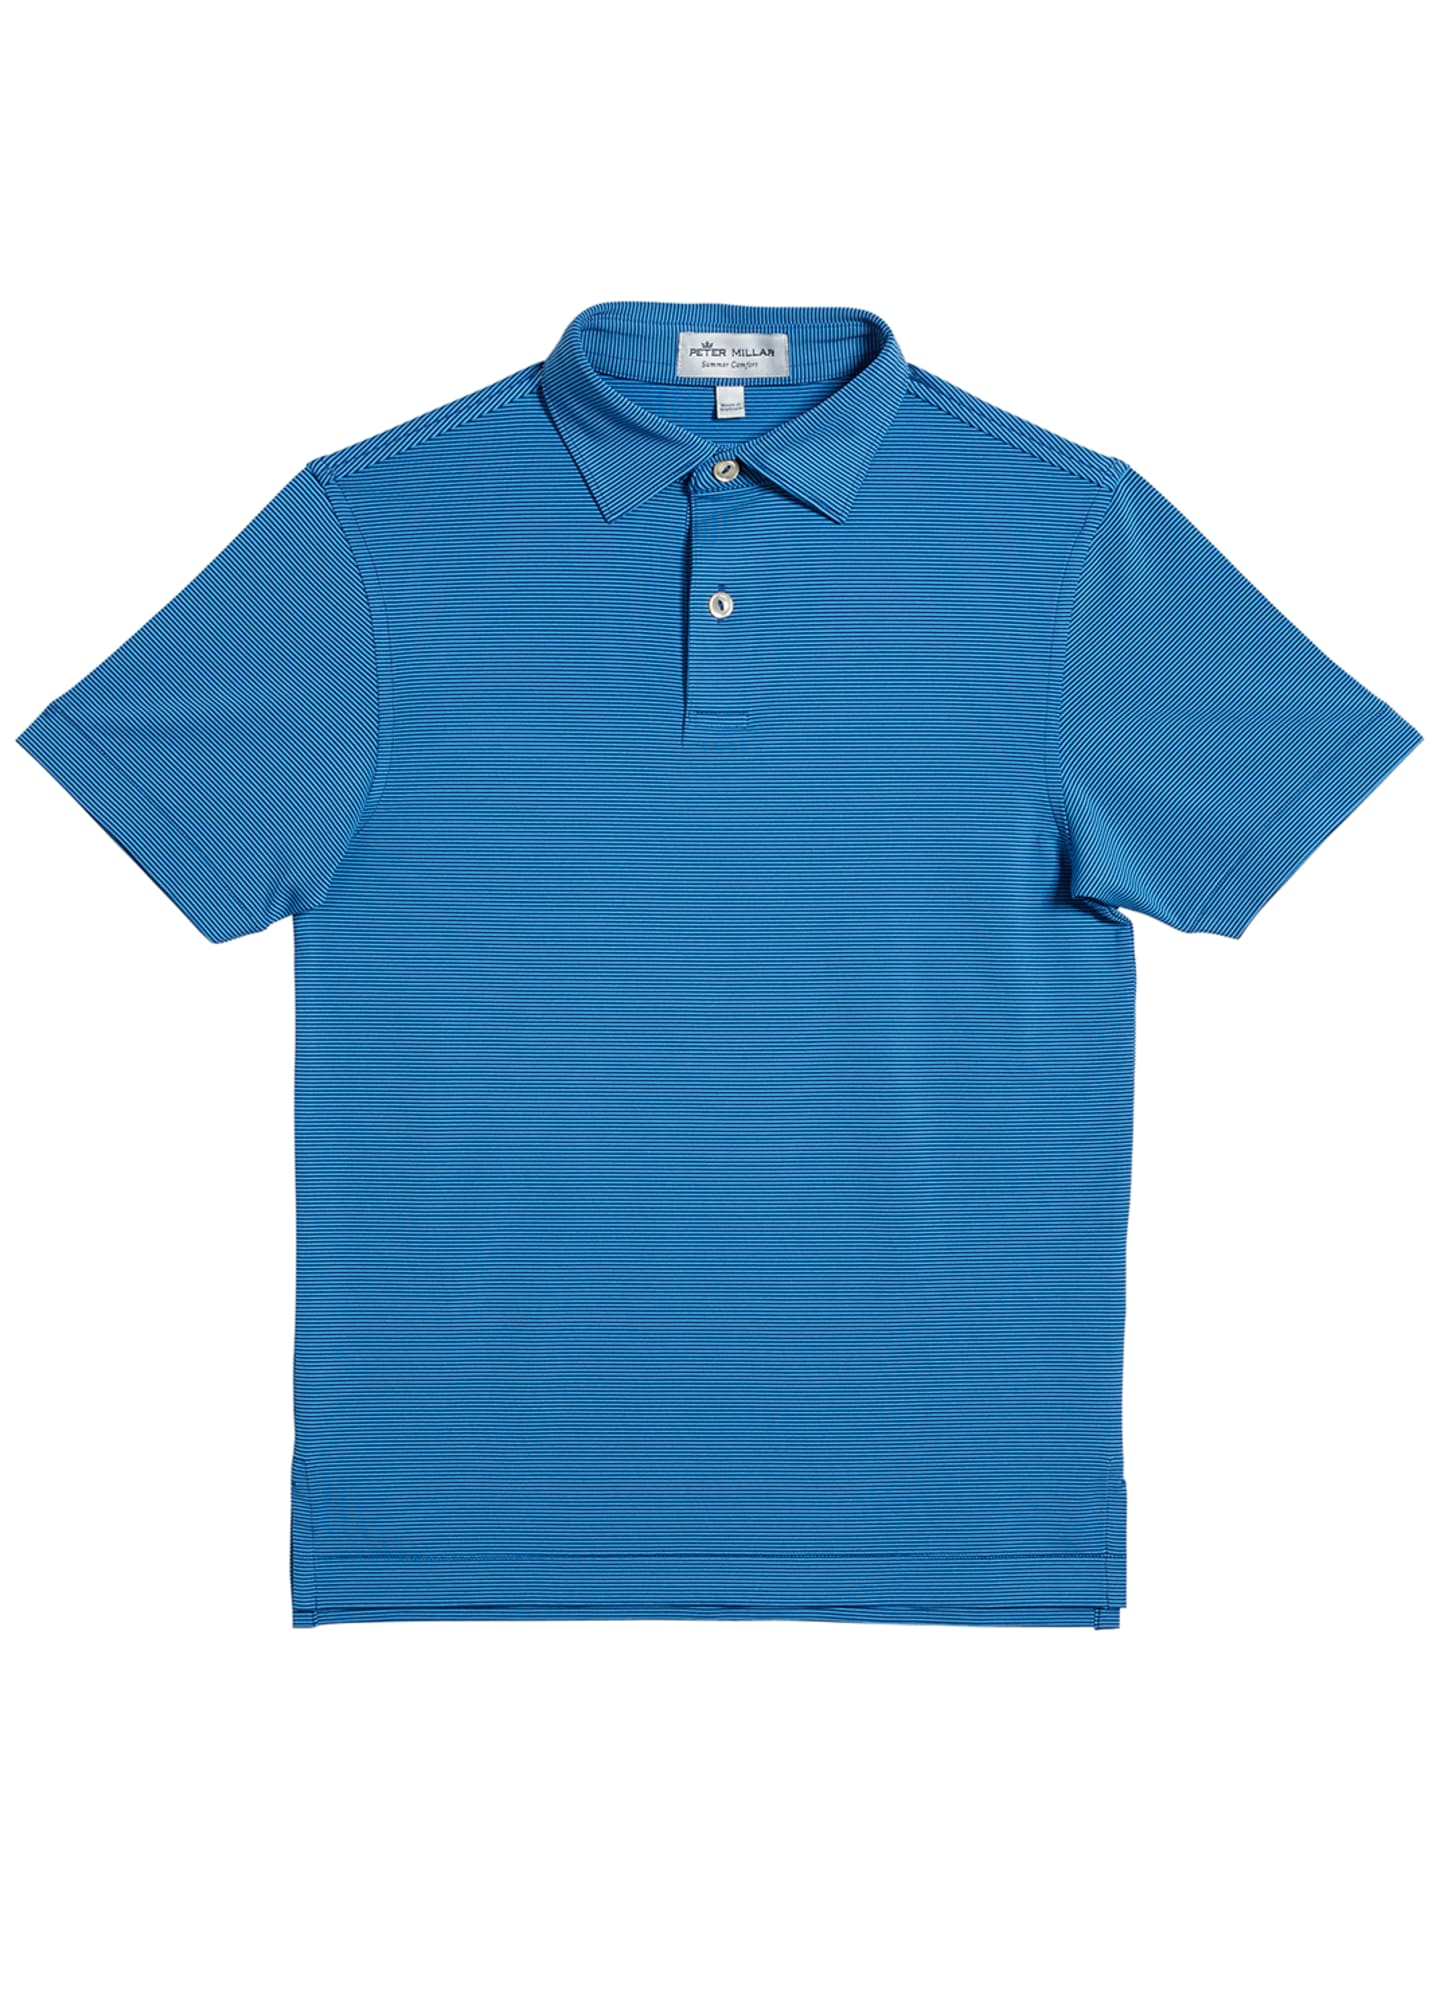 Image 1 of 1: Stretch Jersey Jubilee Striped Polo Shirt, Size XS-XL